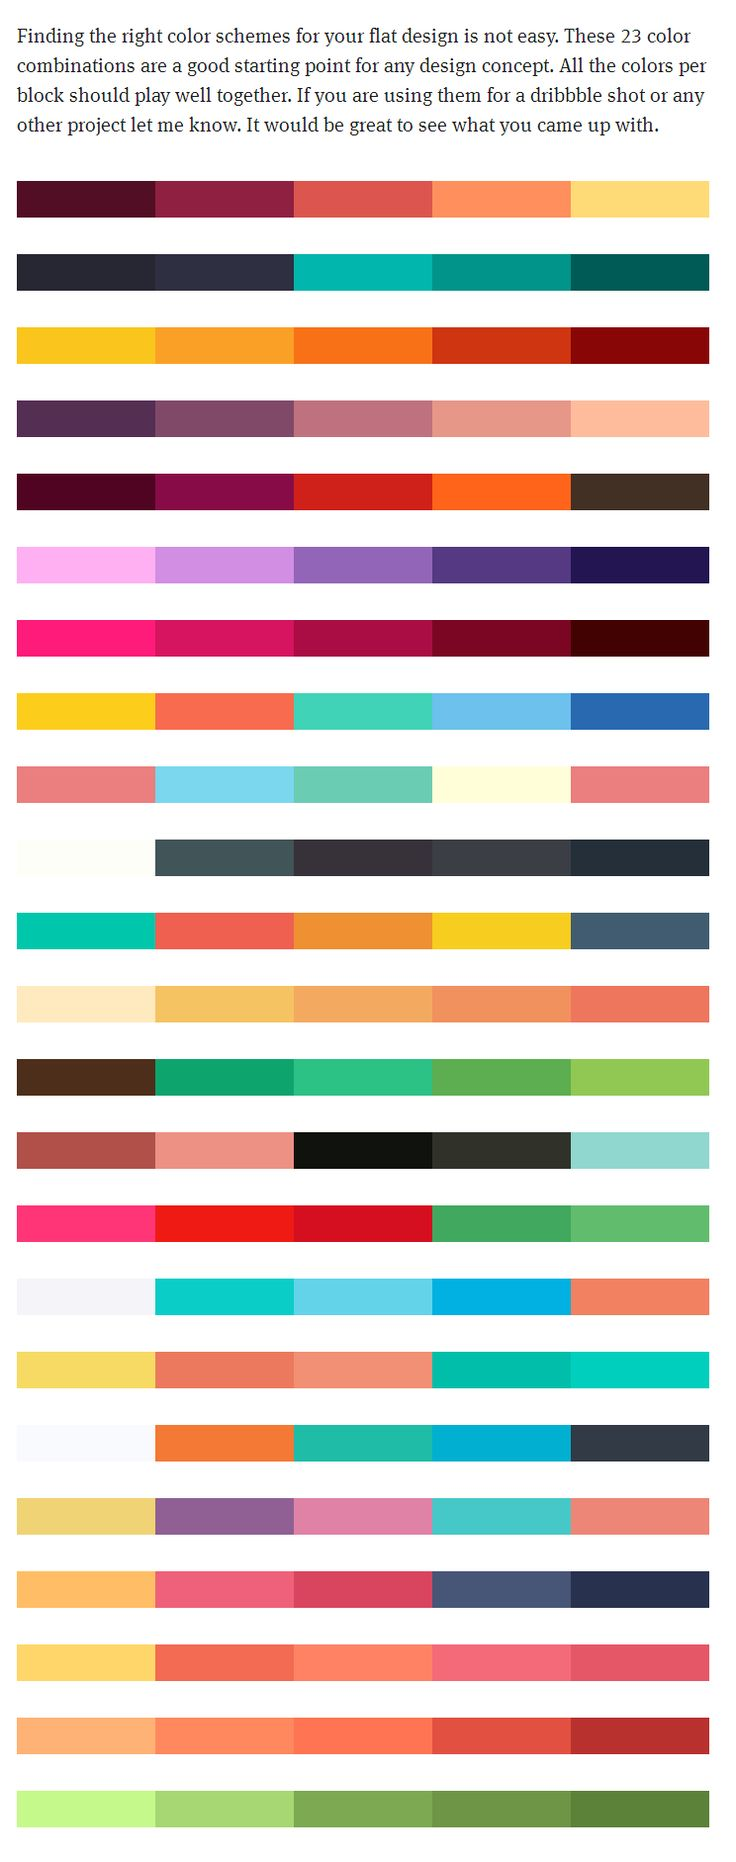 23 color schemes as an inspiration or starting point for your Flat-UI design - Autumn Edition.   Finding the right color schemes for your flat design is not easy. These 23 color combinations are a good starting point for any design concept. All the colors per block should play well together.